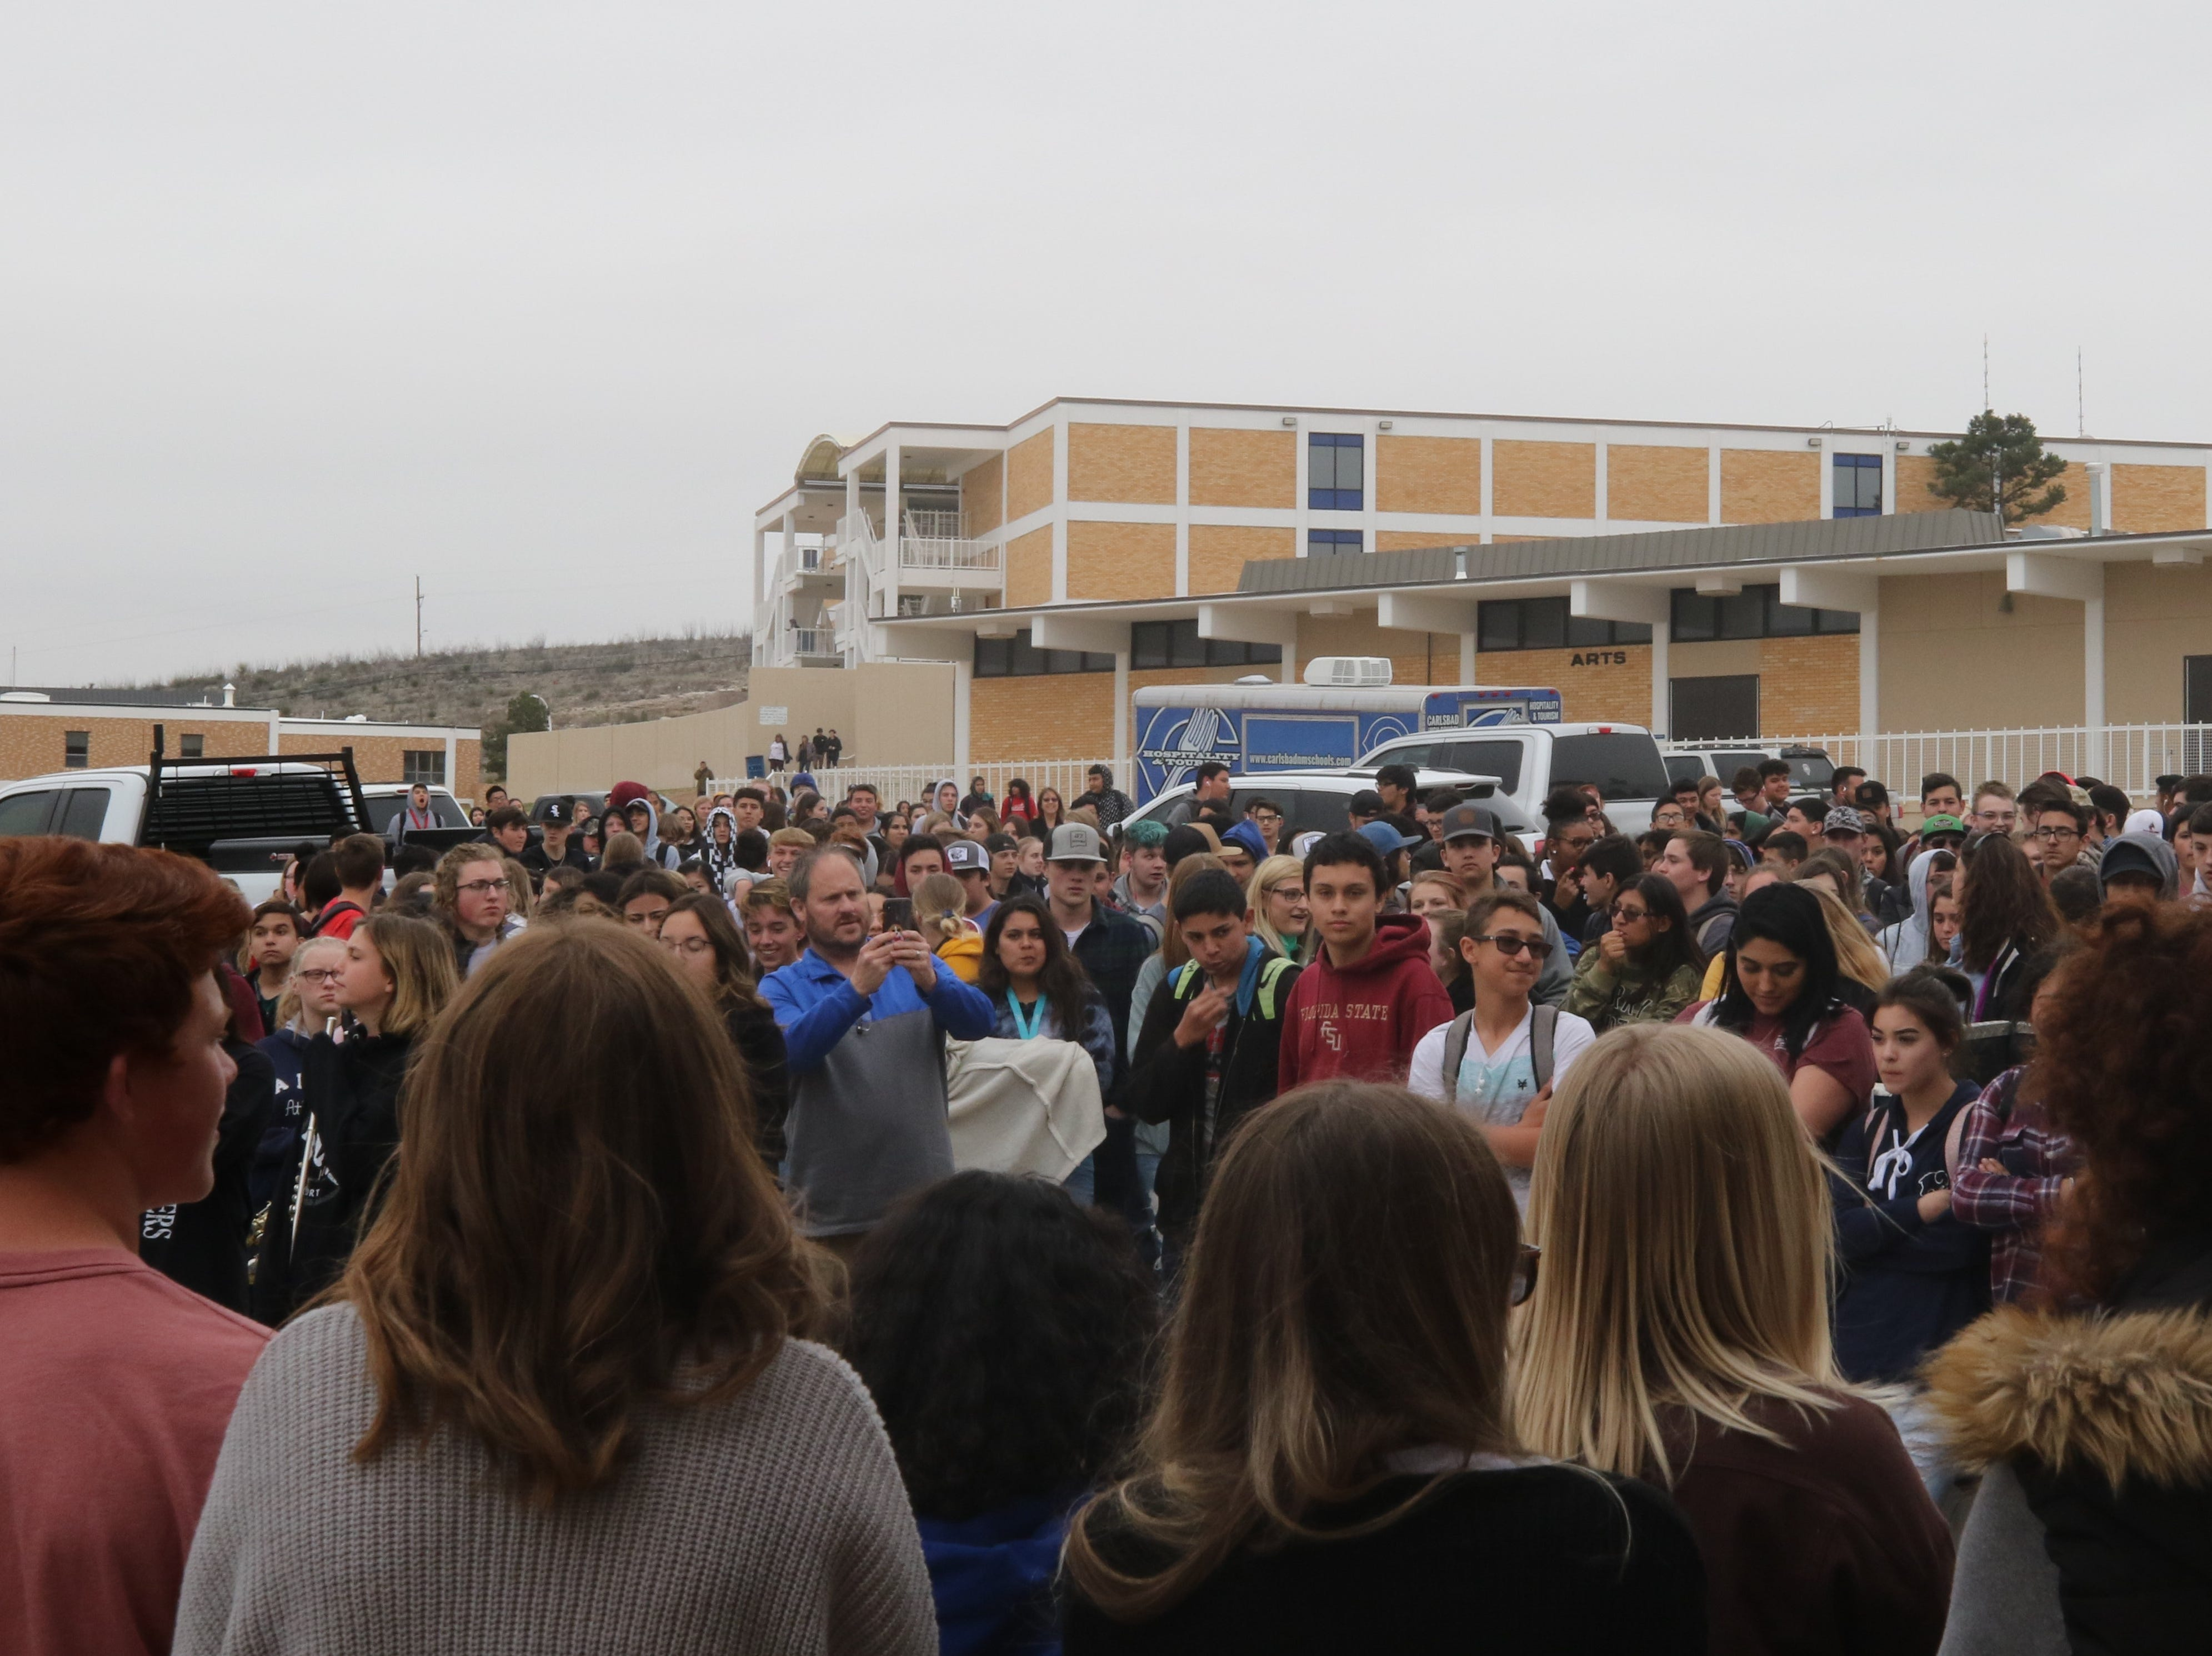 Carlsbad High School students gather at the Automotive Technology Building to celebrate a donation from XTO Energy, March 11, 2019 at Carlsbad High School.